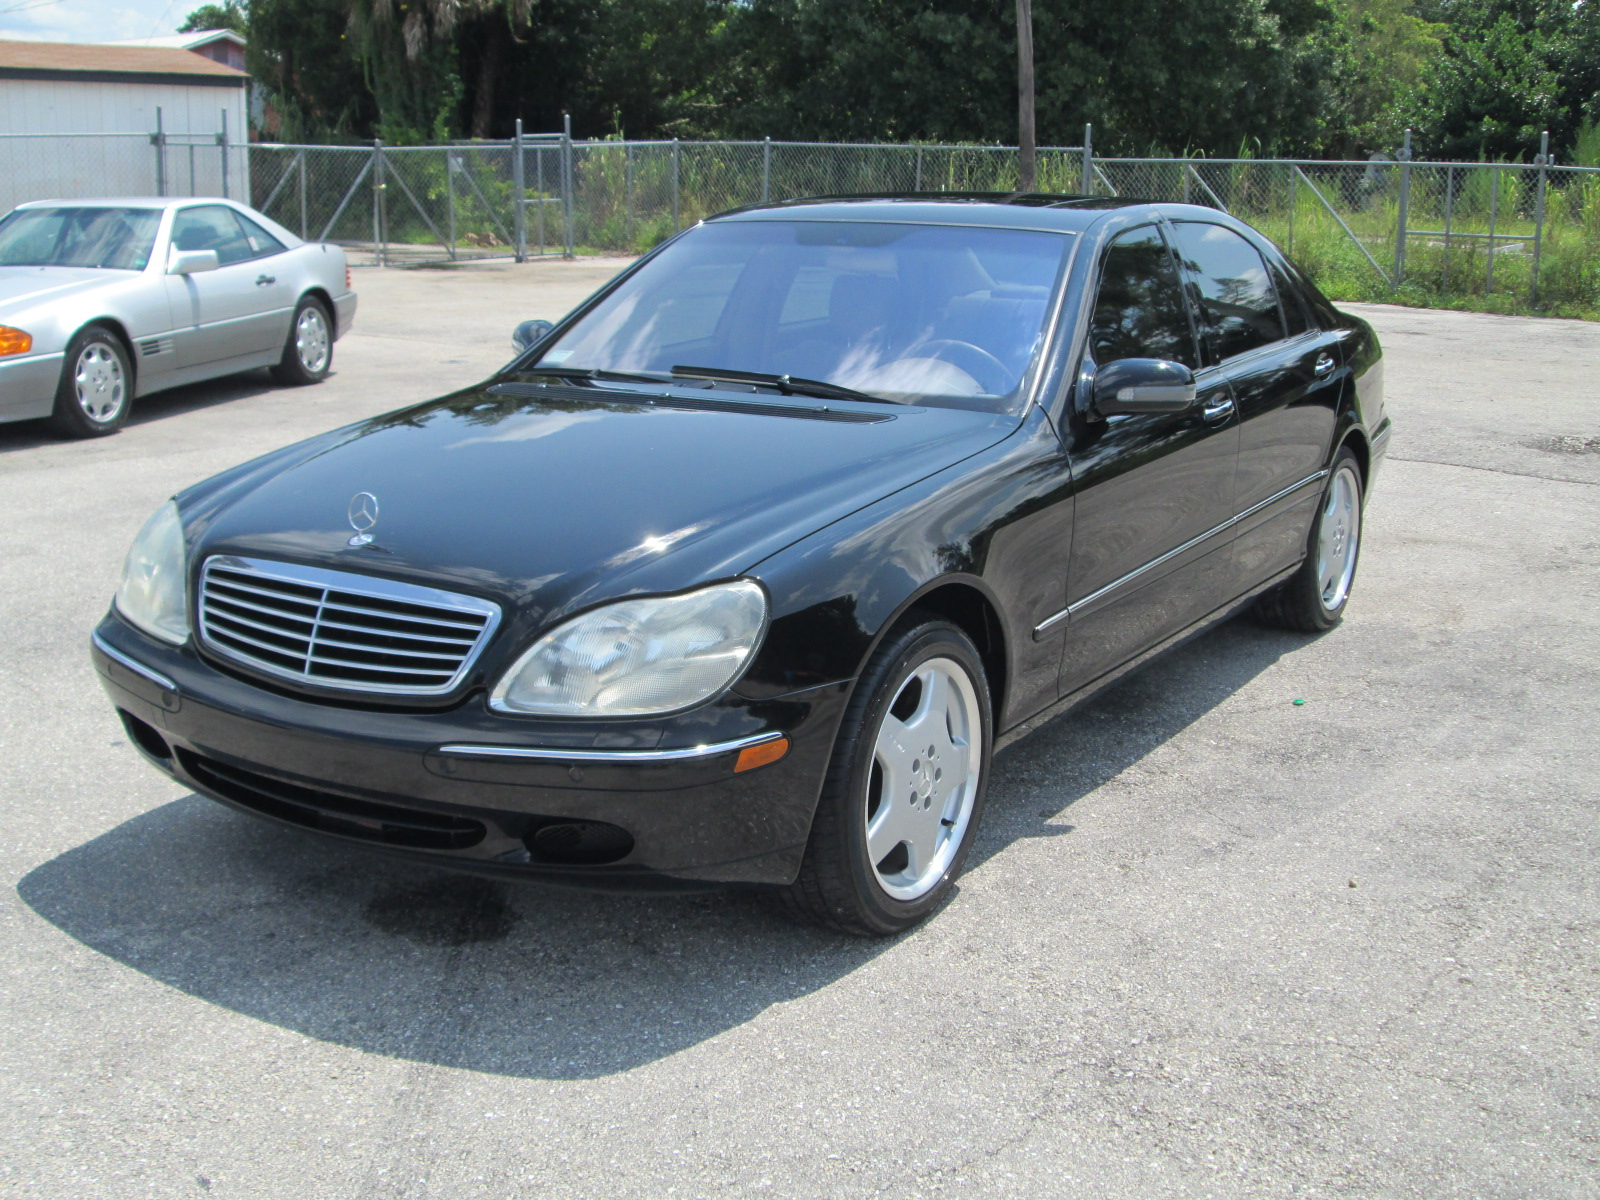 2001 mercedes benz s class exterior pictures cargurus for 2001 mercedes benz s500 specs